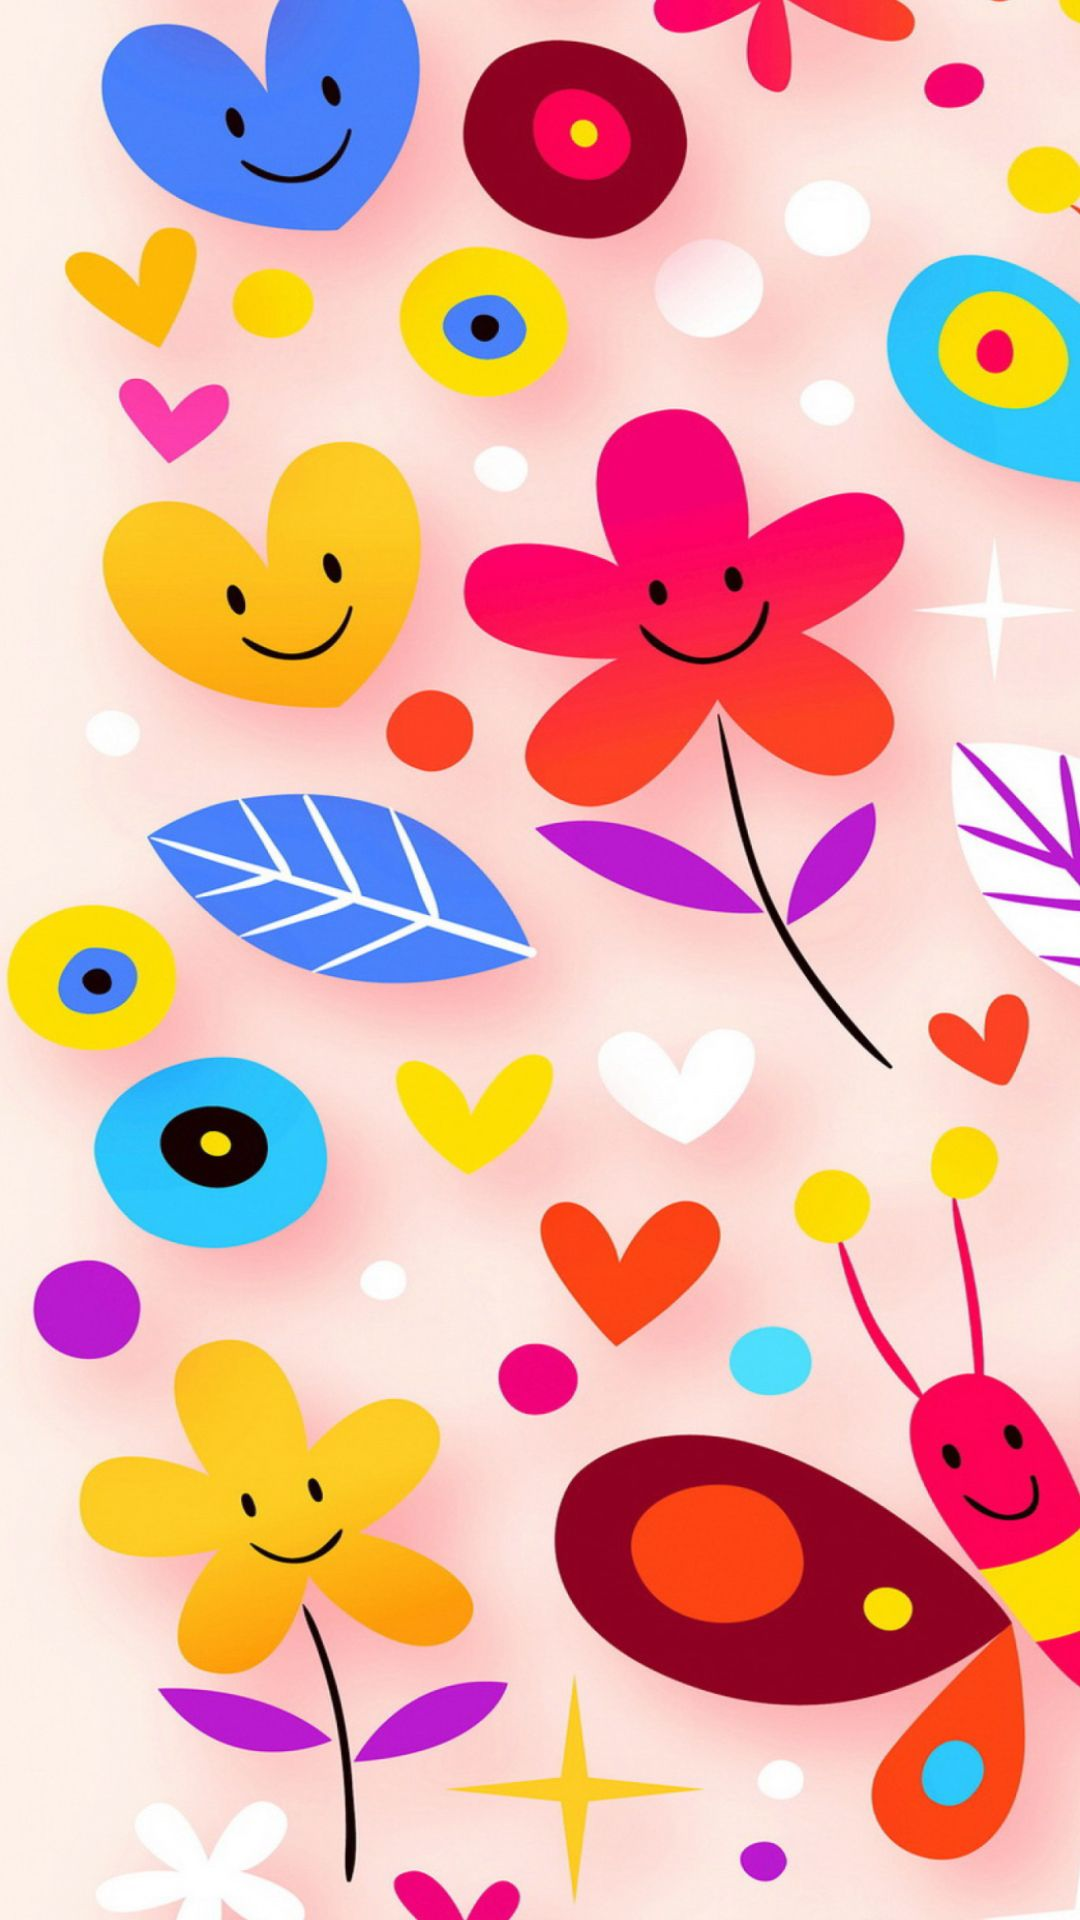 Pattern Tap To See More Cute Cartoon Wallpapers Mobile9 Cute Cartoon Wallpapers Wallpaper Iphone Cute Cartoon Wallpaper Iphone